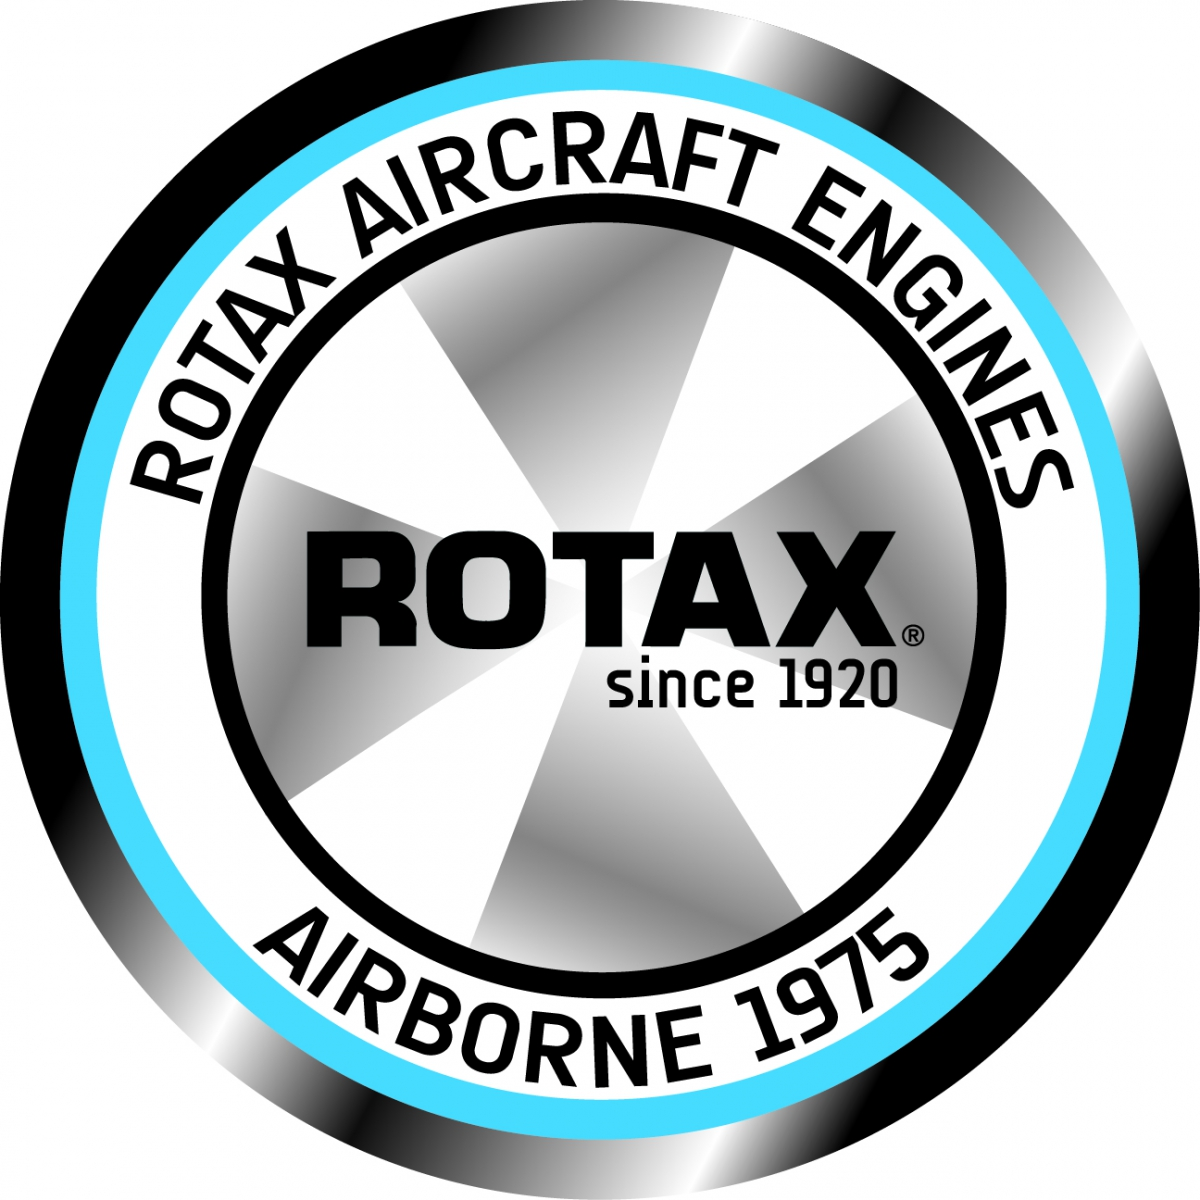 40 years of Rotax aircraft engines